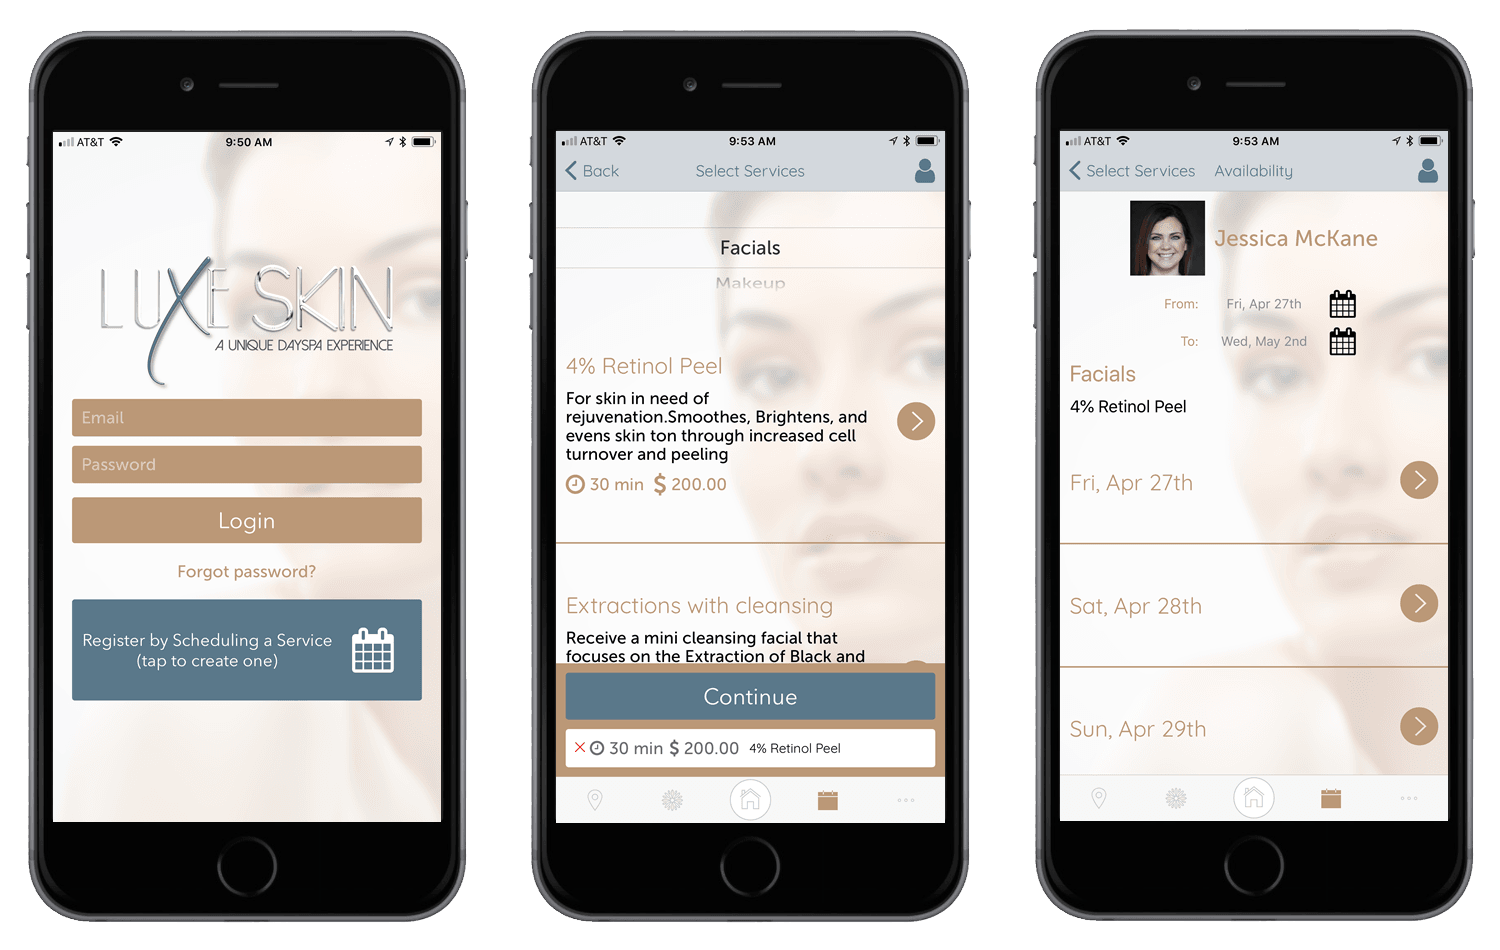 Luxe Skin Day Spa Mobile App